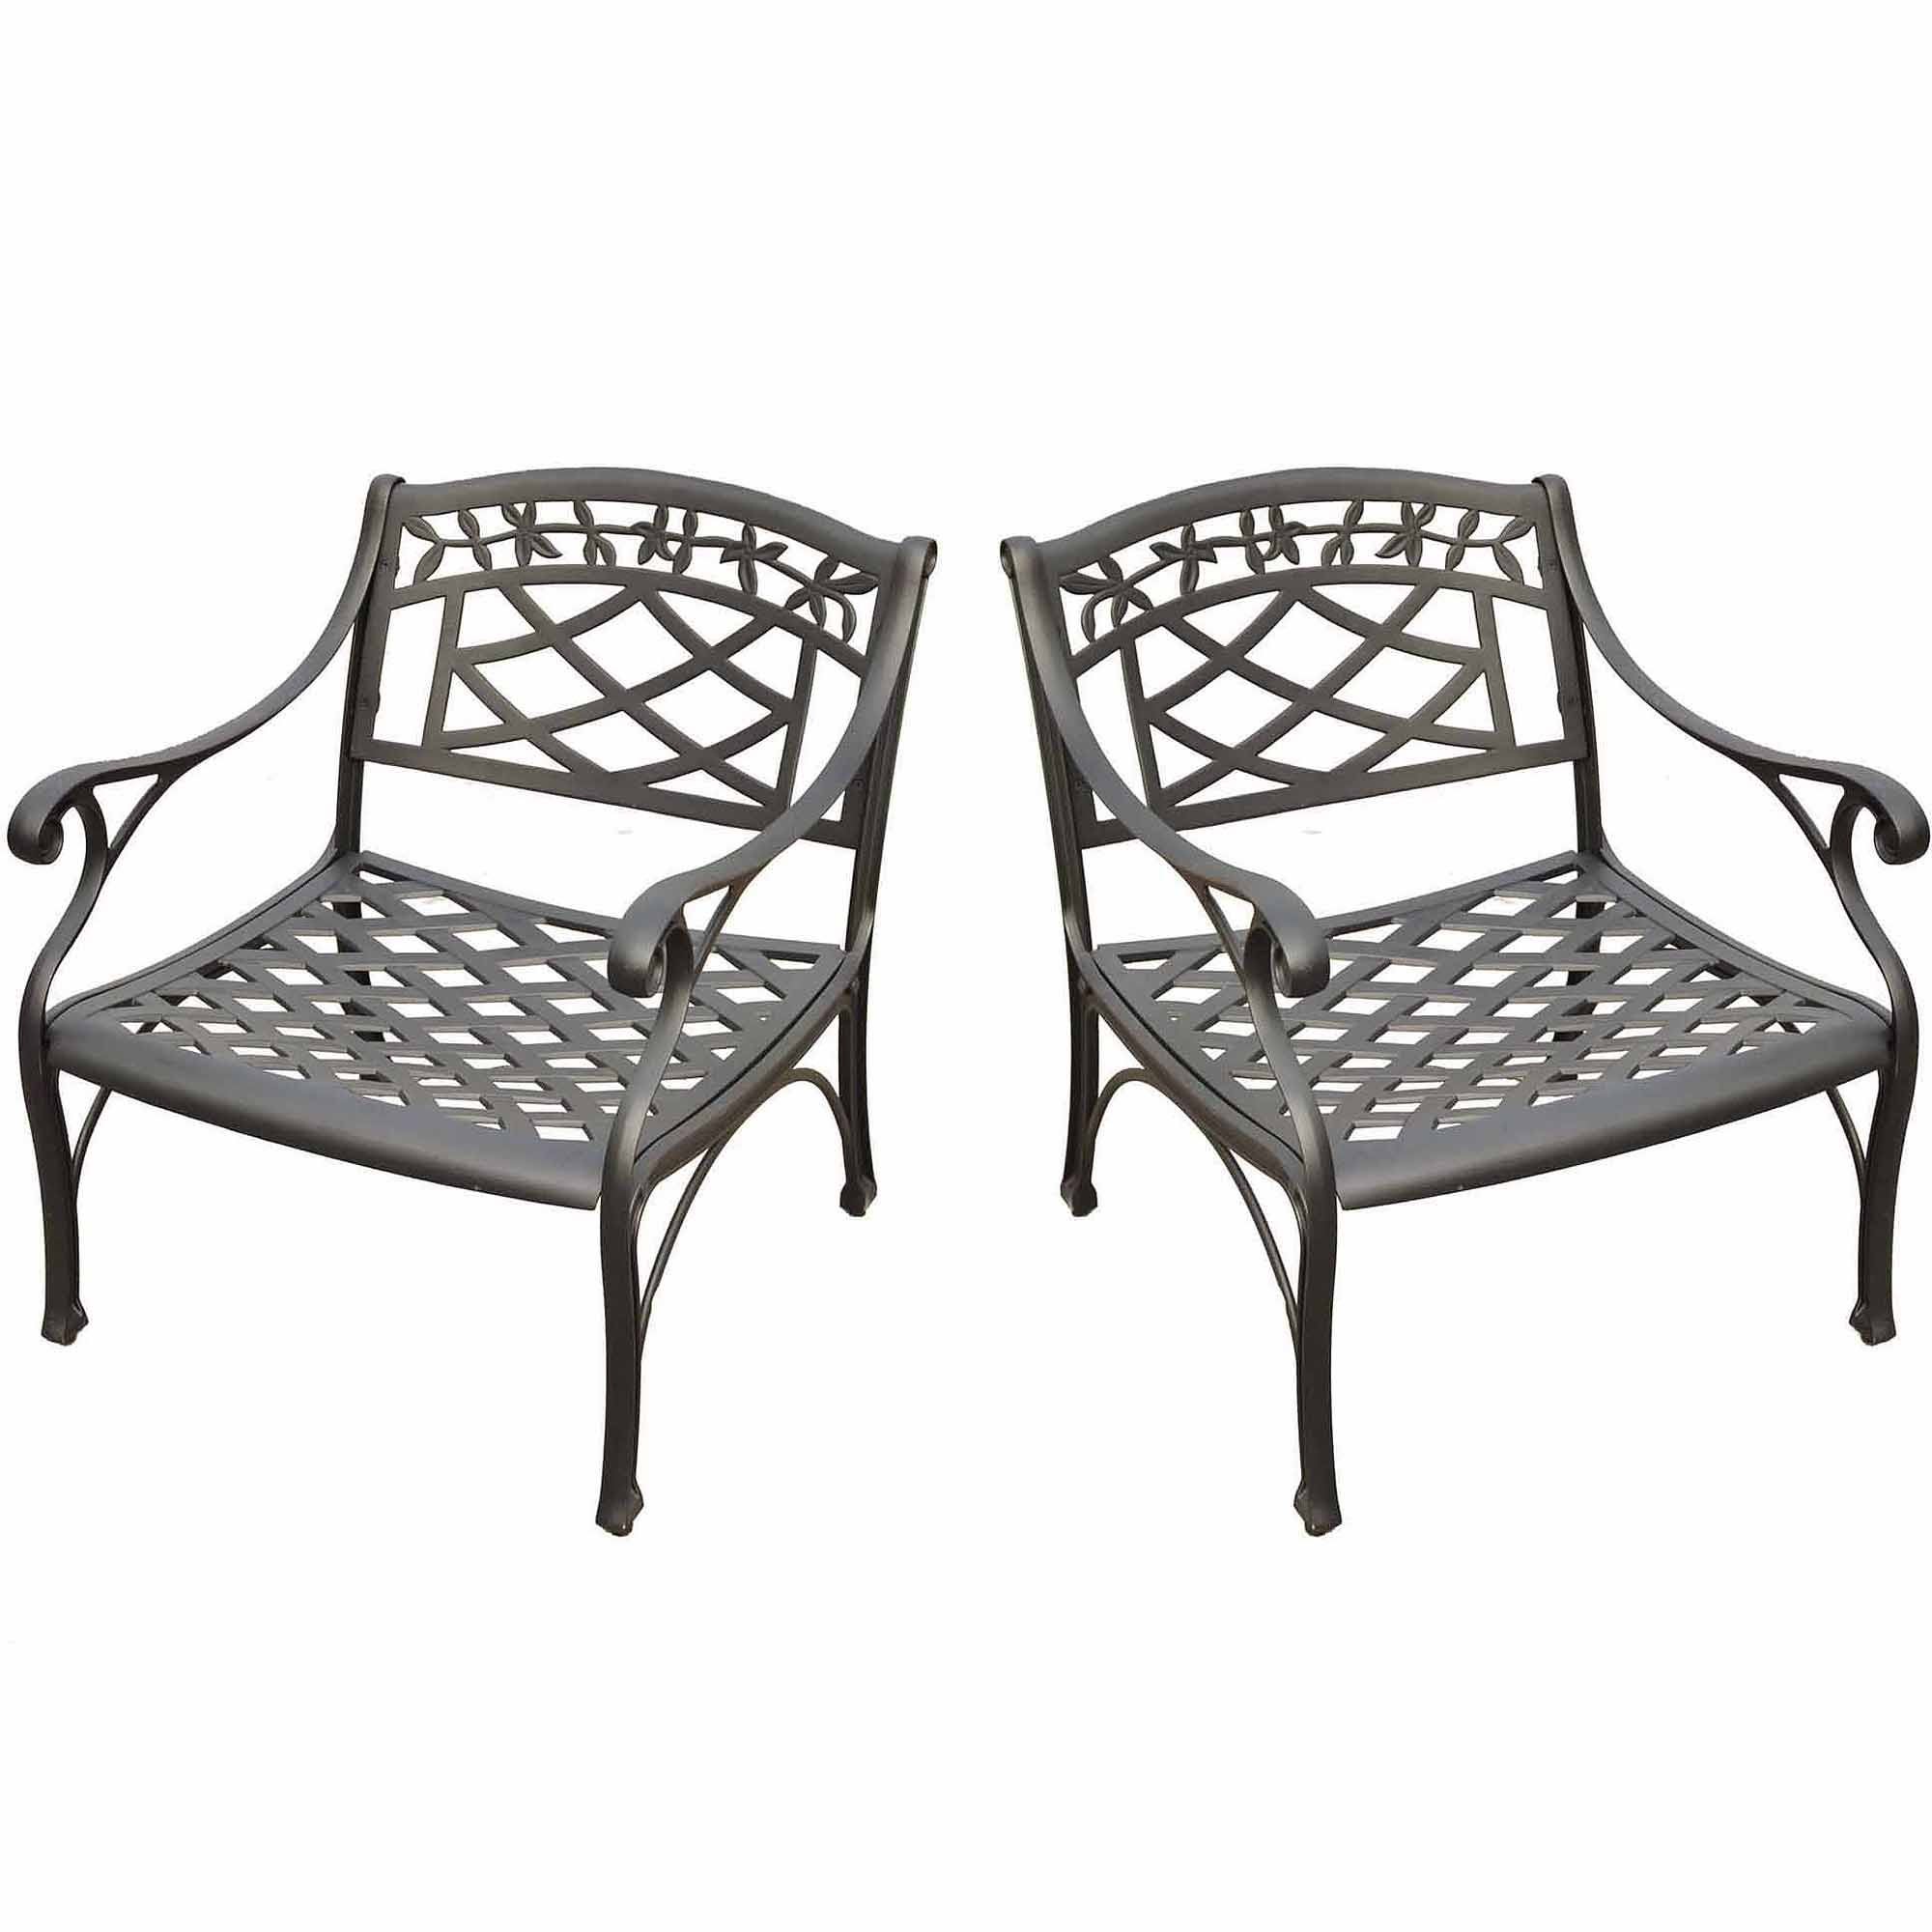 Crosley Furniture Sedona 2 Pc Black Outdoor Conversation Seating Set    Walmart.com